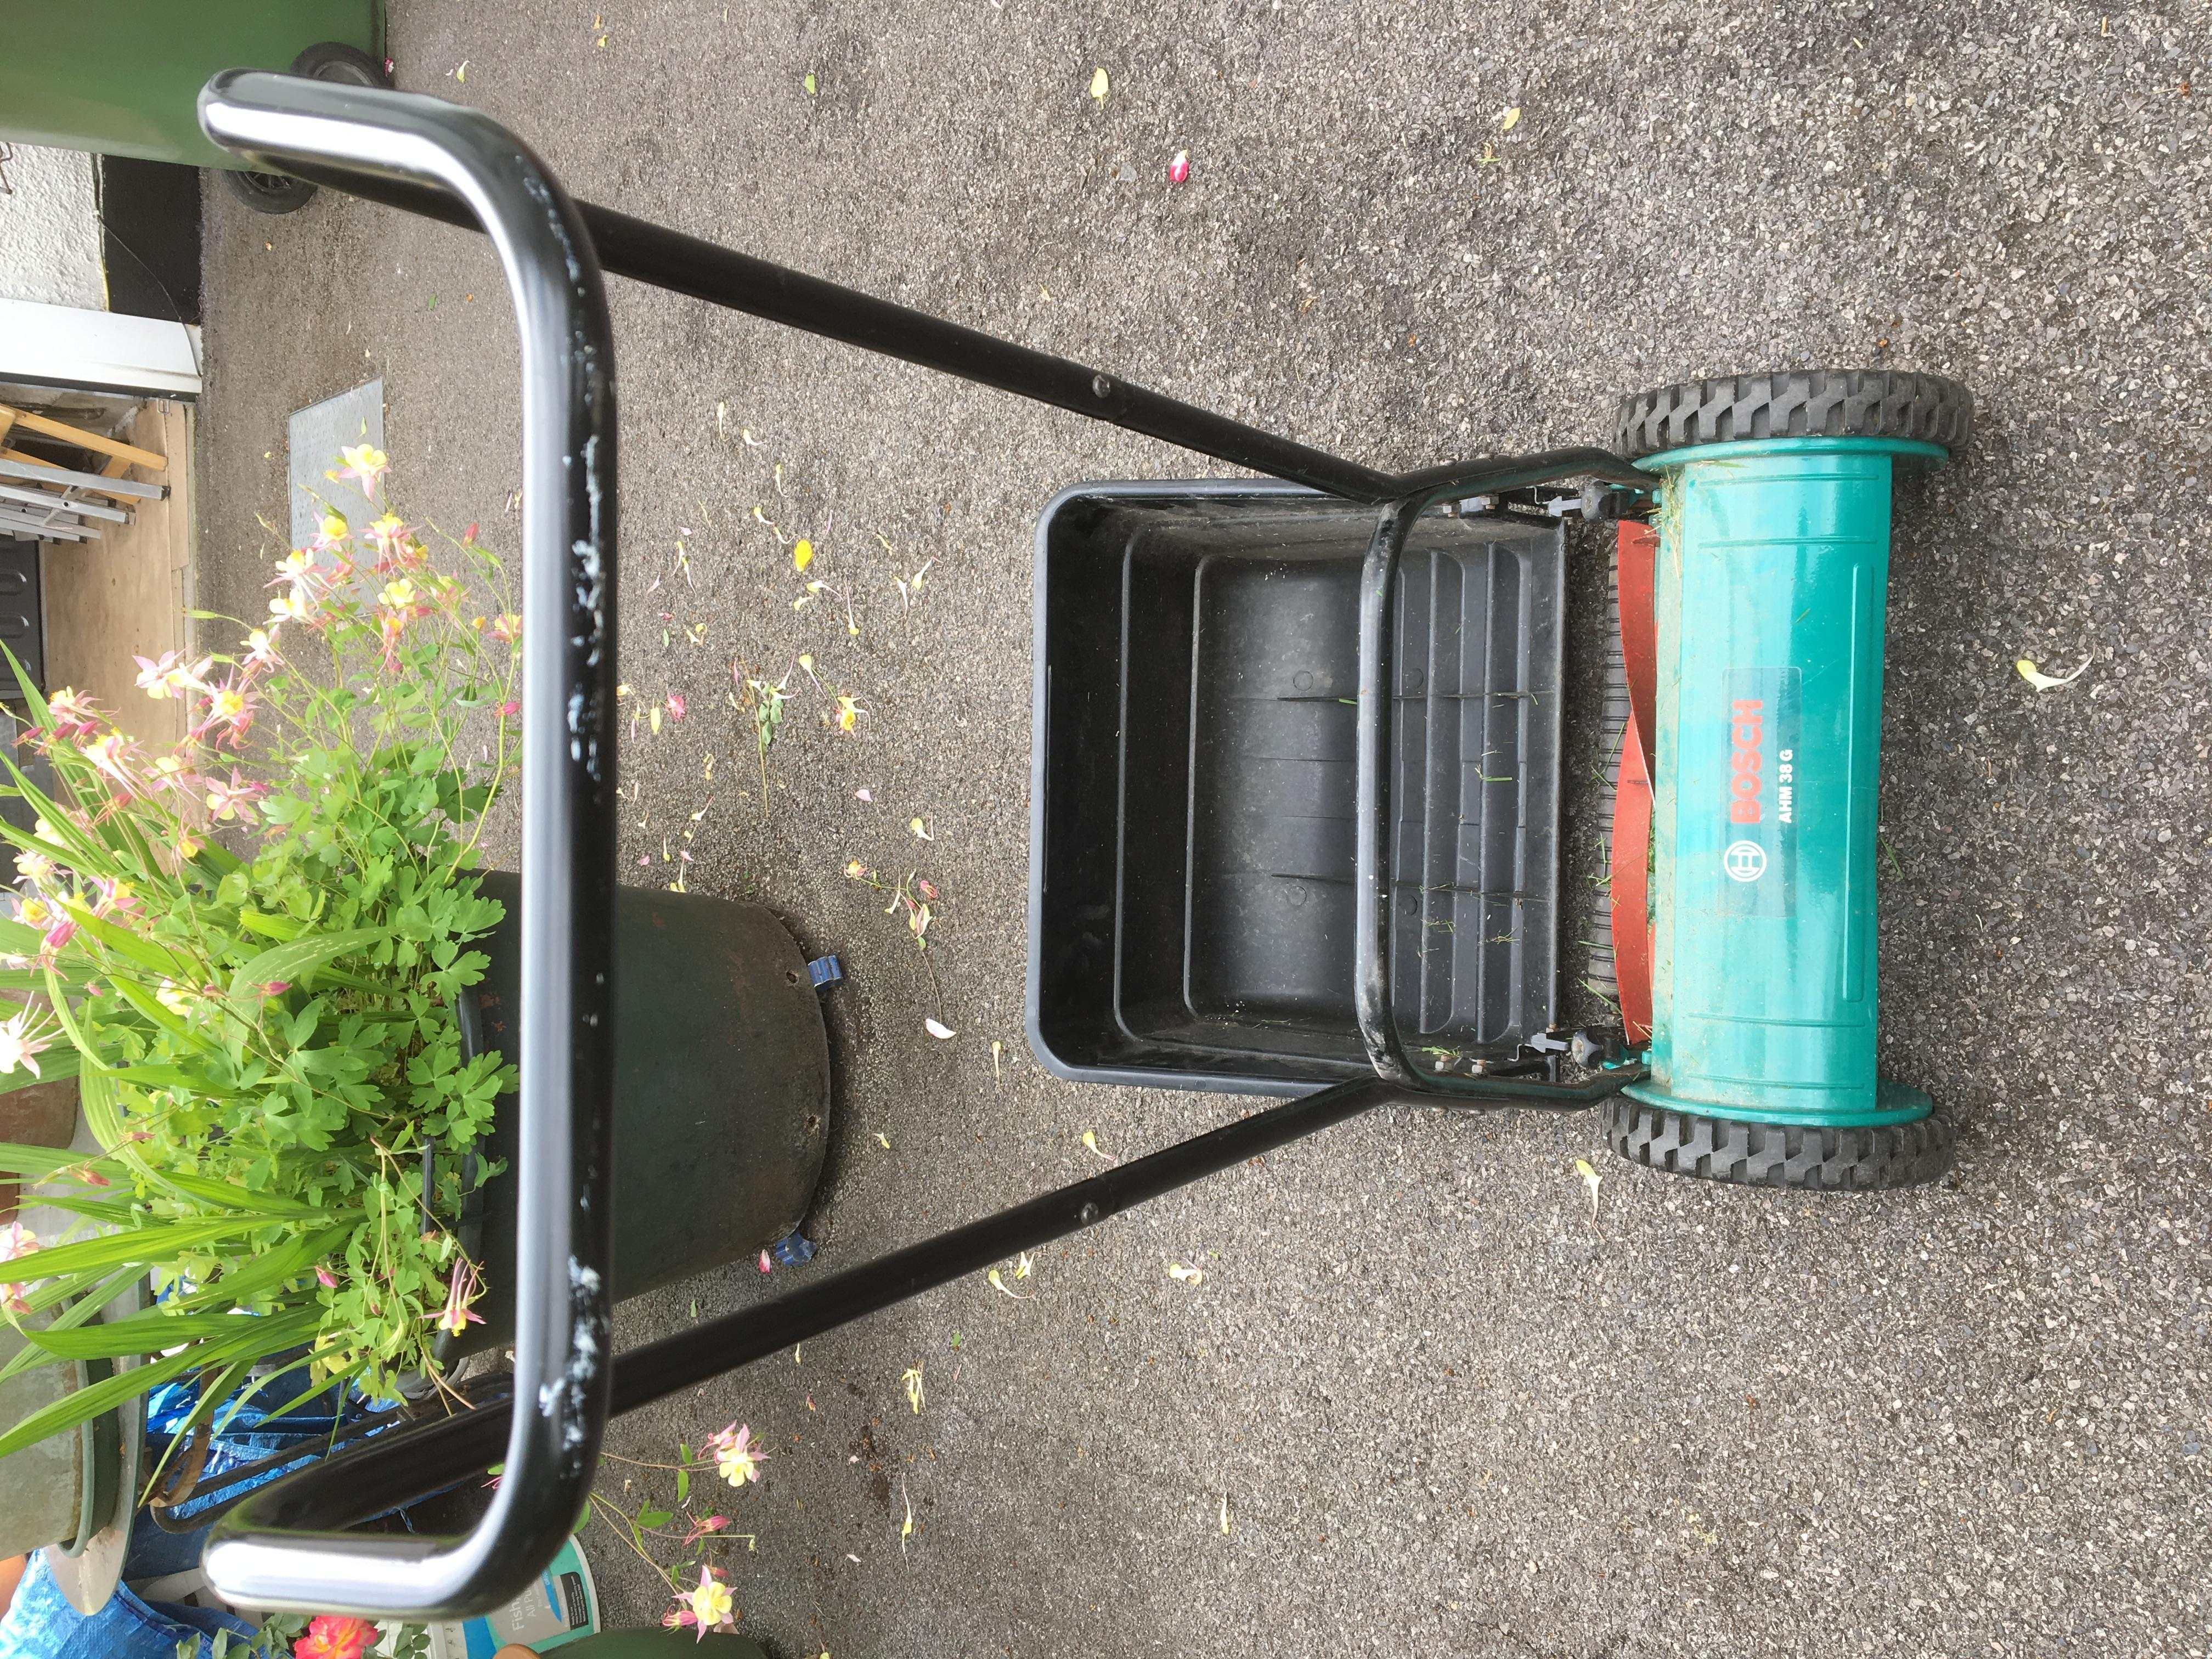 BOSCH push lawn mower in good working order